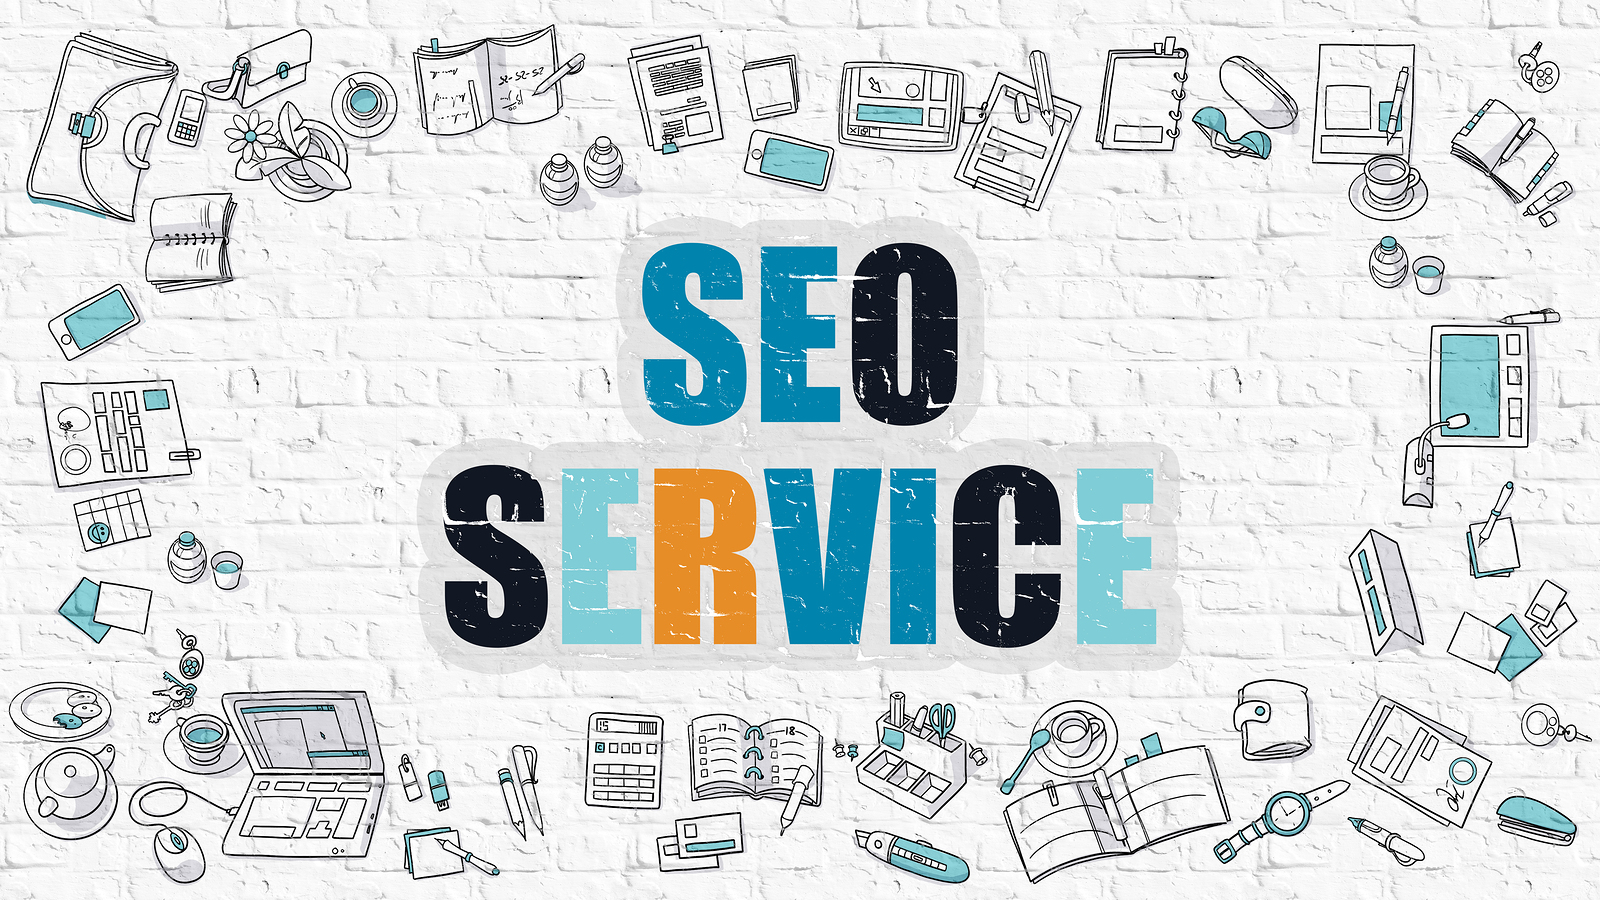 Enjoy more discernibility by contacting the best SEO services company